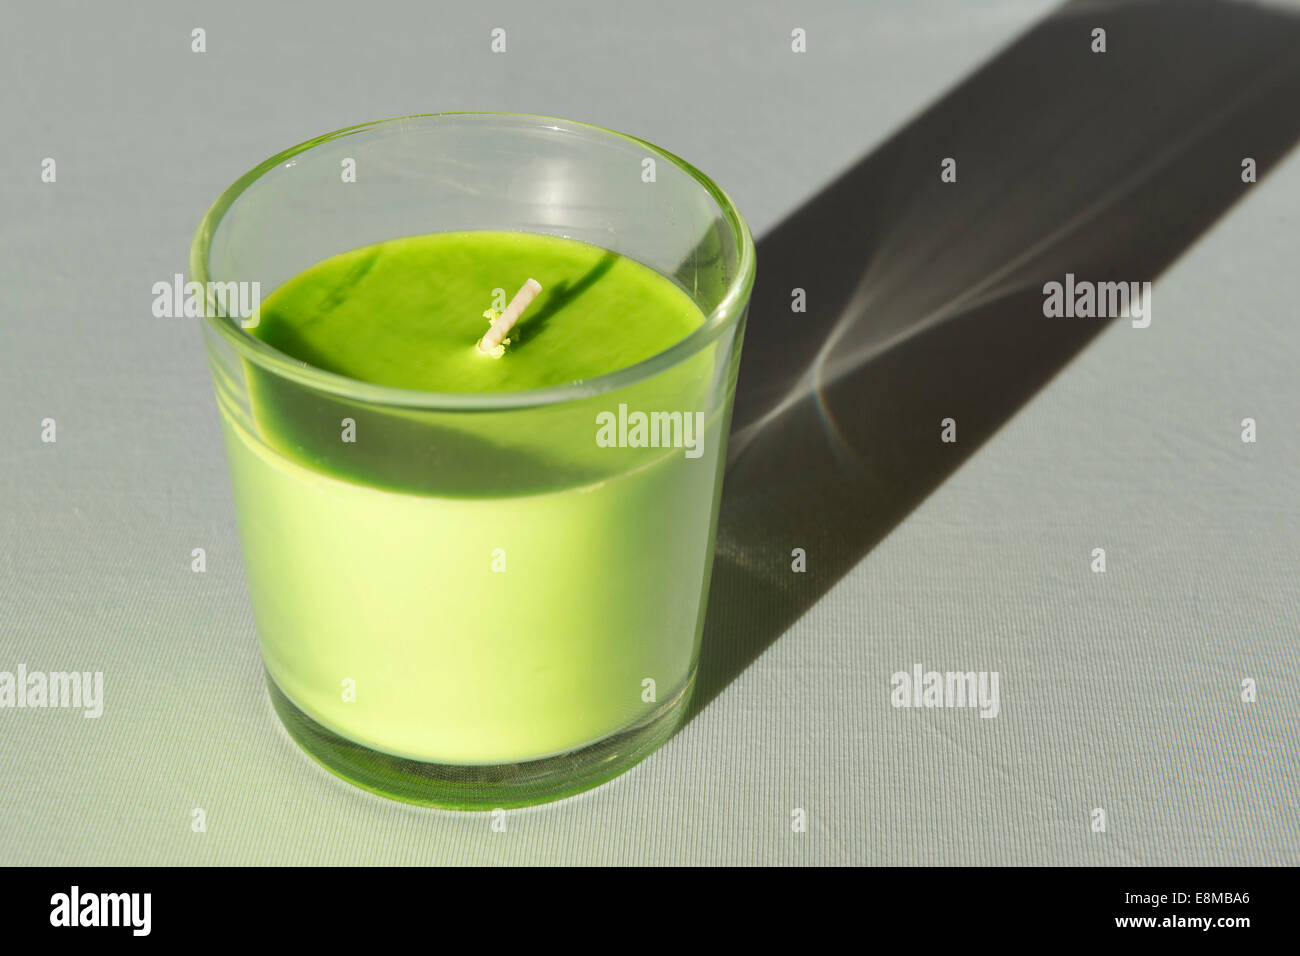 Image of a new green candle on a tablecloth in sunlight - Stock Image